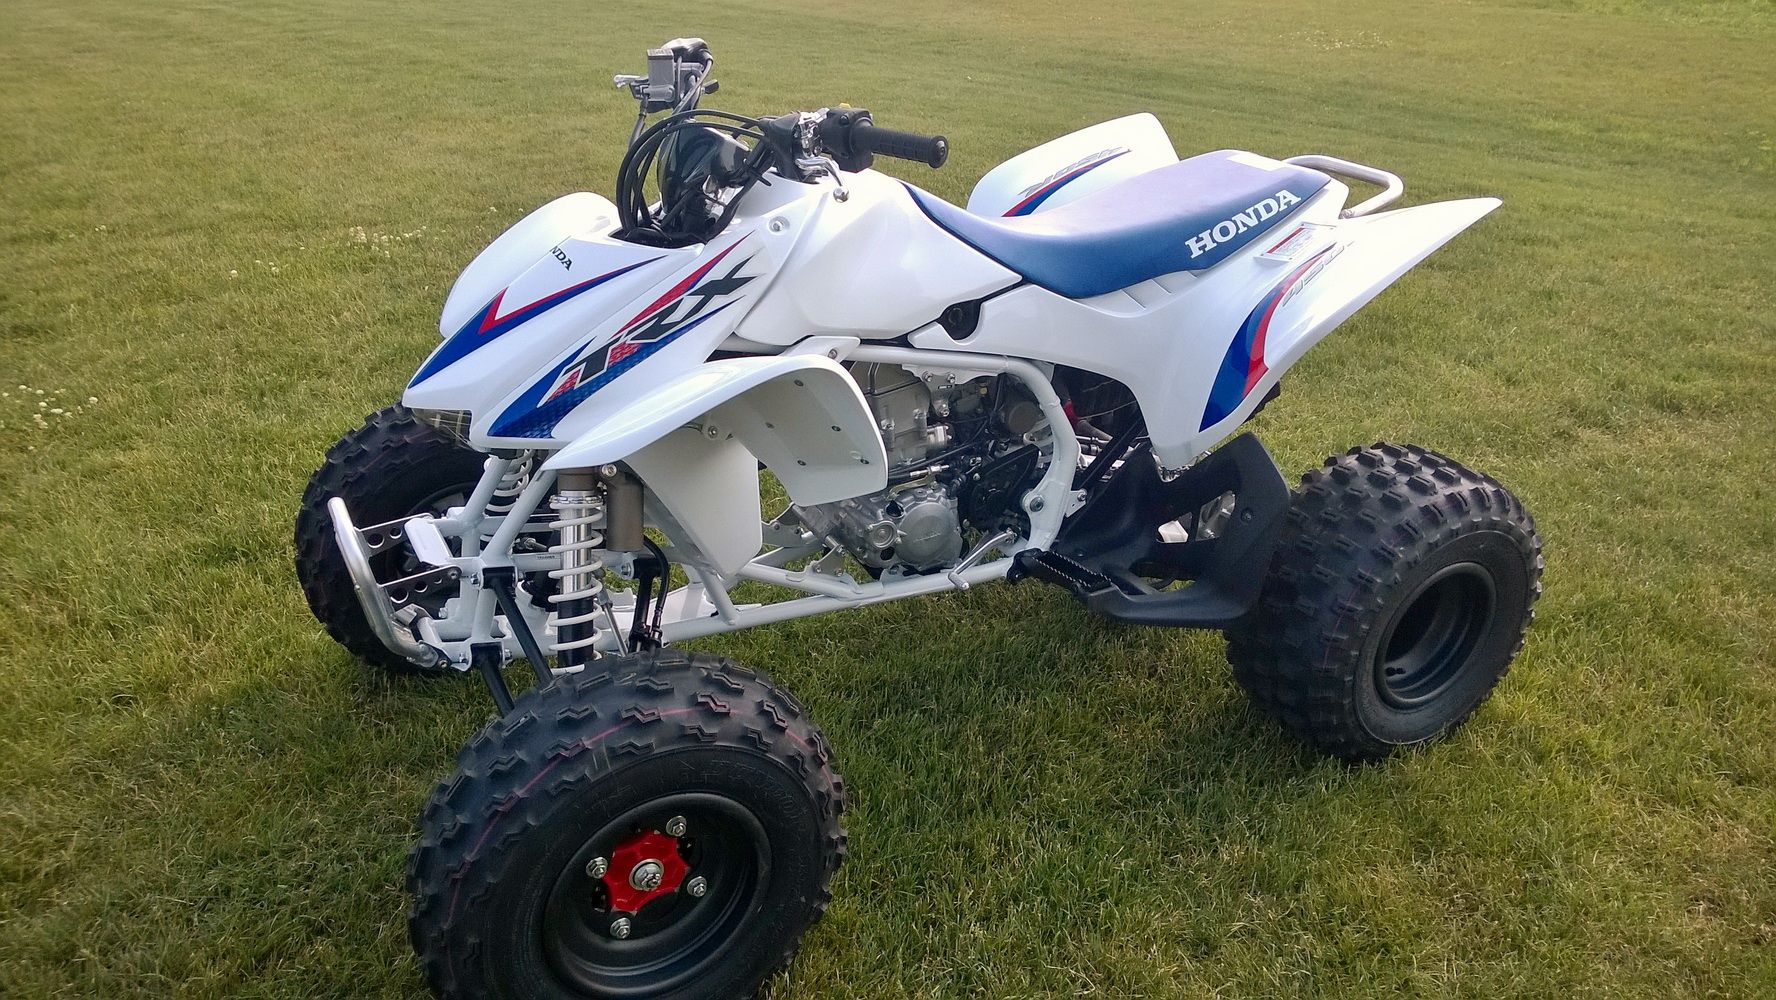 My new 2014 honda trx450r lt250s quads pinterest honda my new 2014 honda trx450r lt250s fandeluxe Image collections